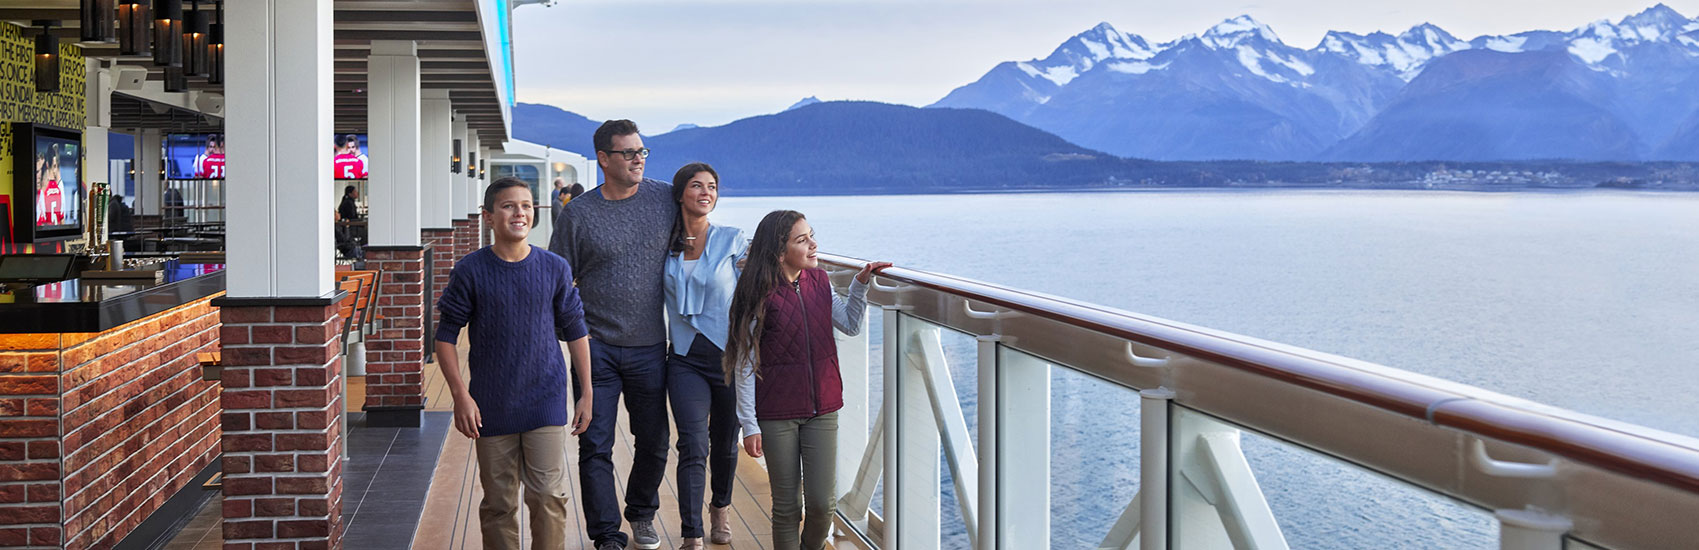 Free at Sea in Alaska with Norwegian Cruise Line 2